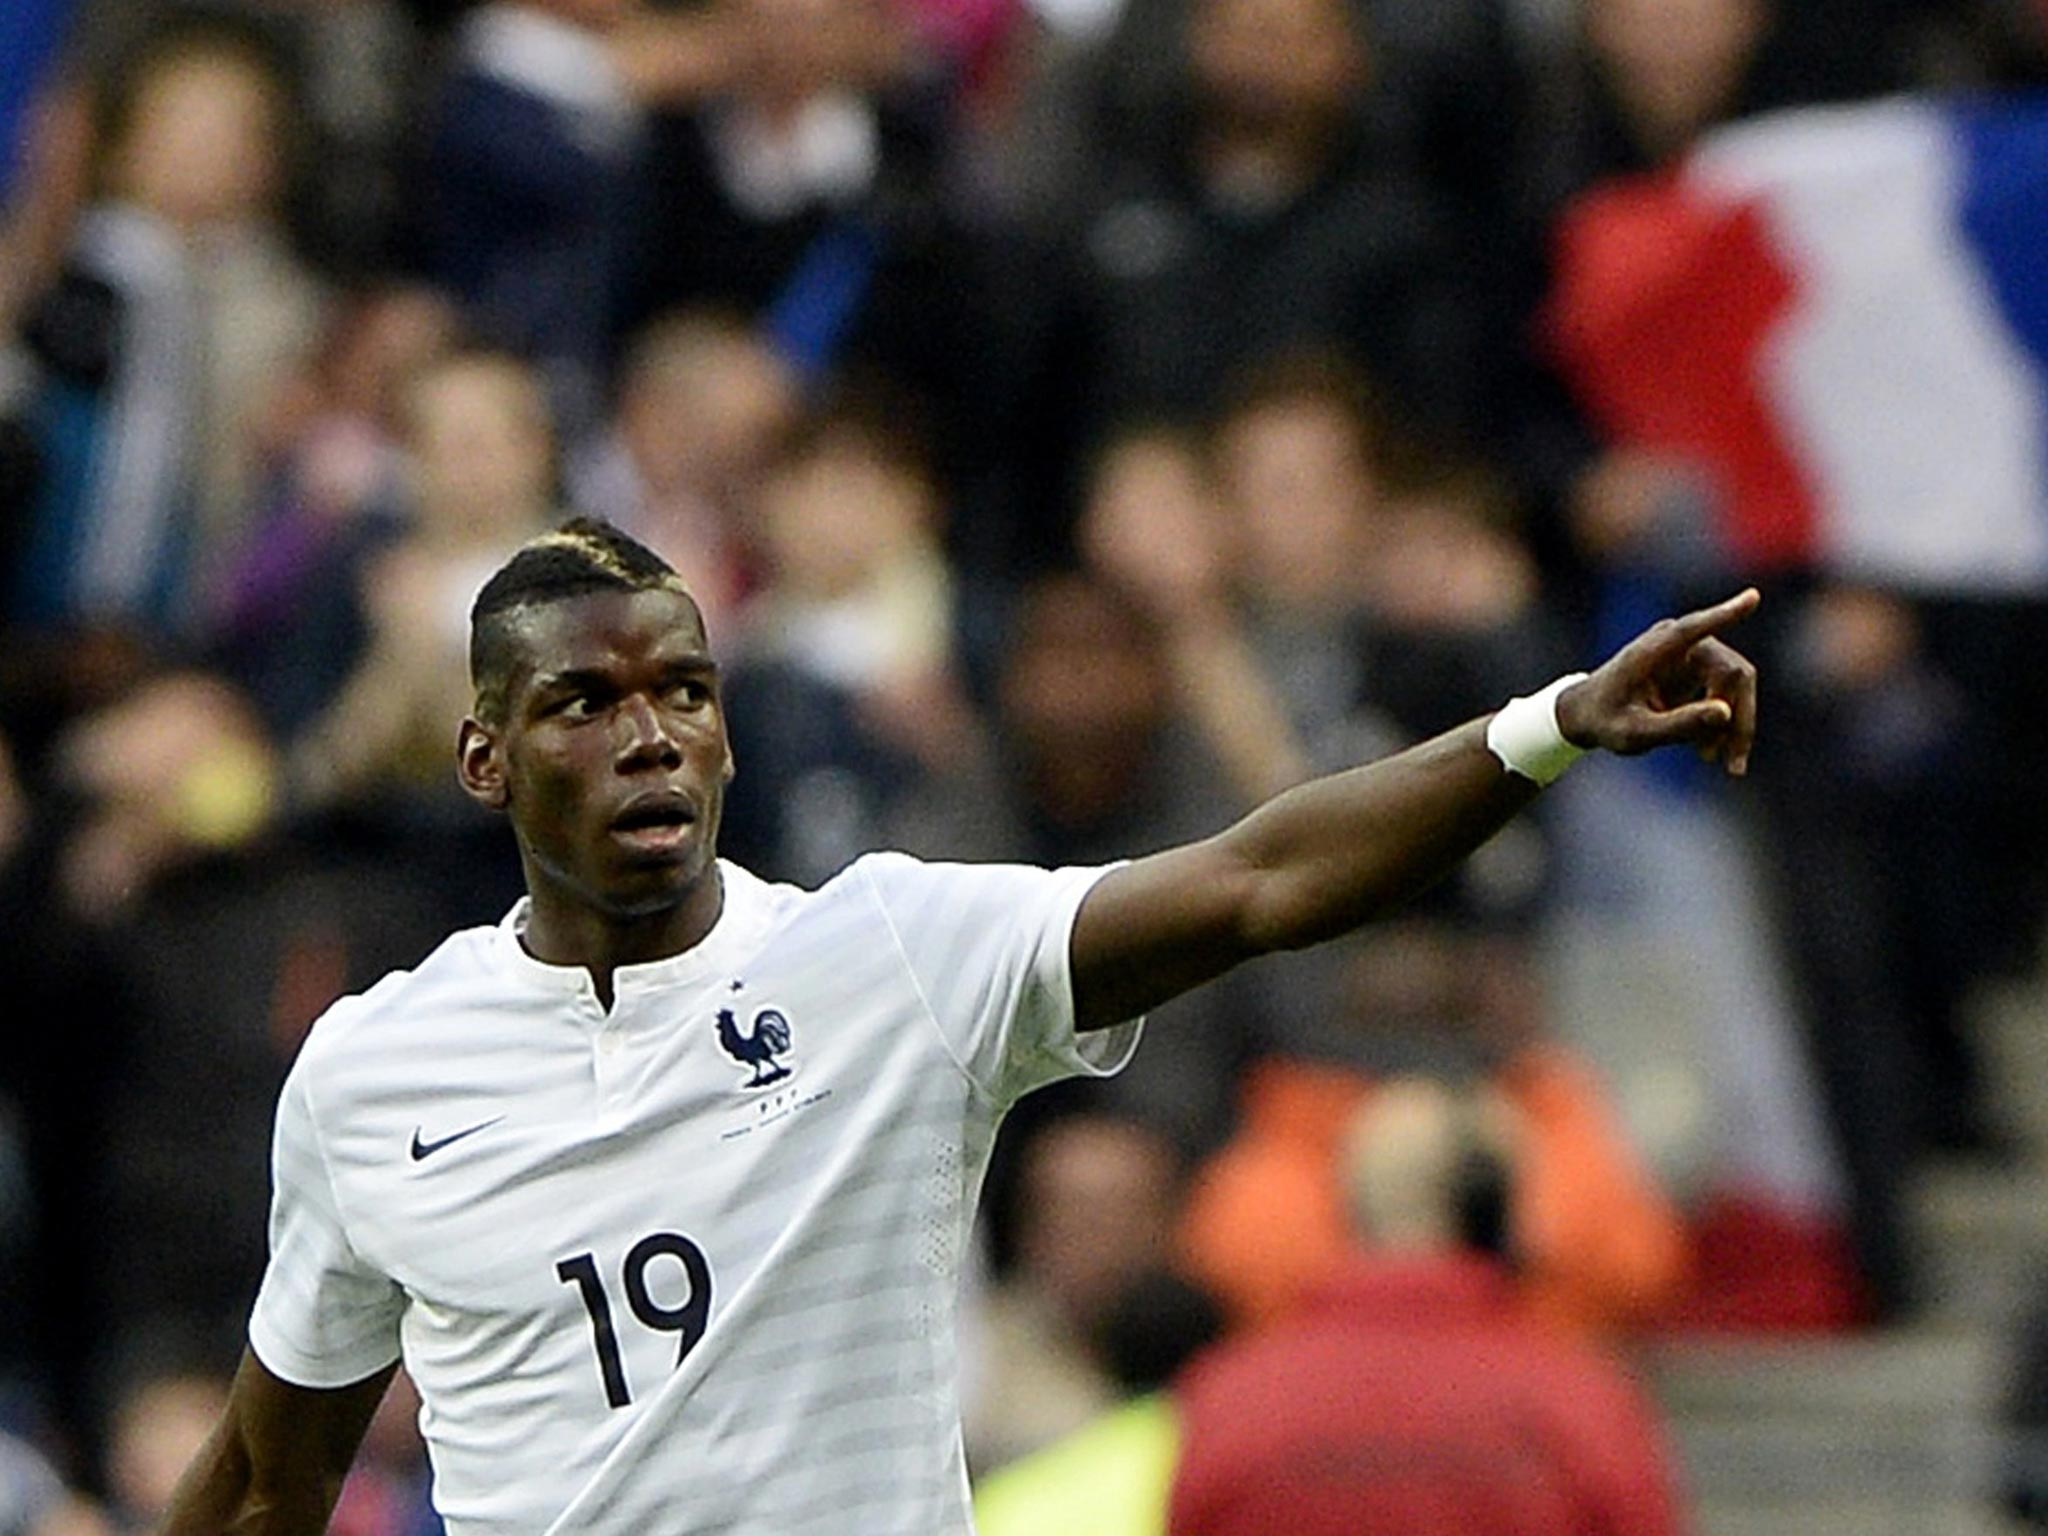 France Vs Nigeria Preview World Cup 2014 Paul Pogba Points The Way For Next Generation Of Stars